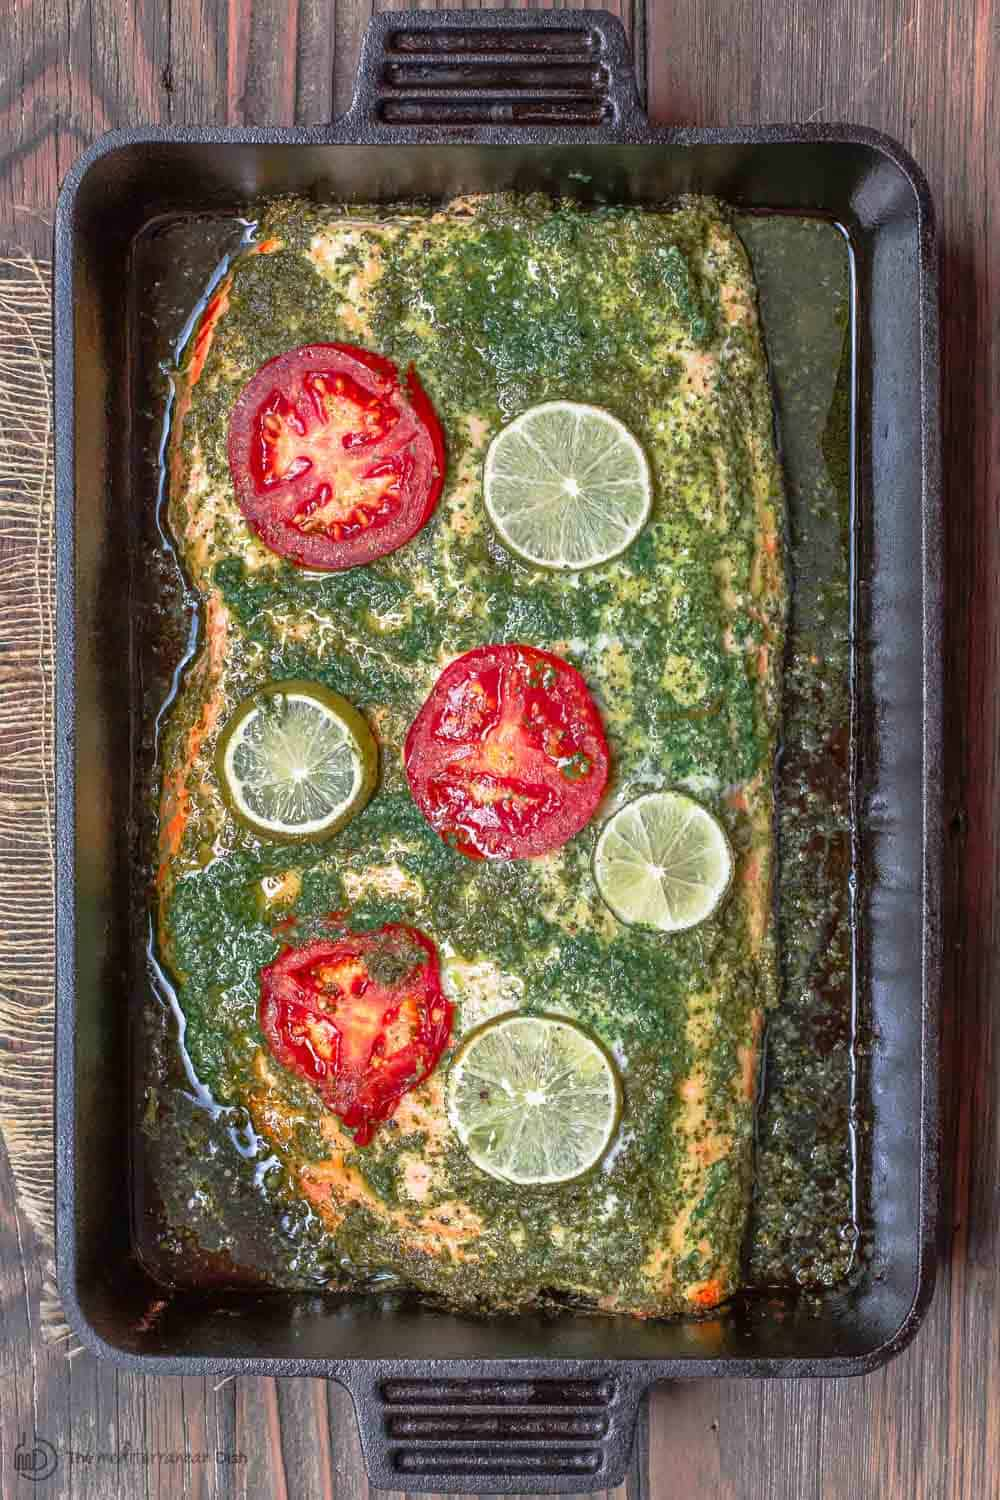 Baked Salmon garnished with tomatoes and lime slices